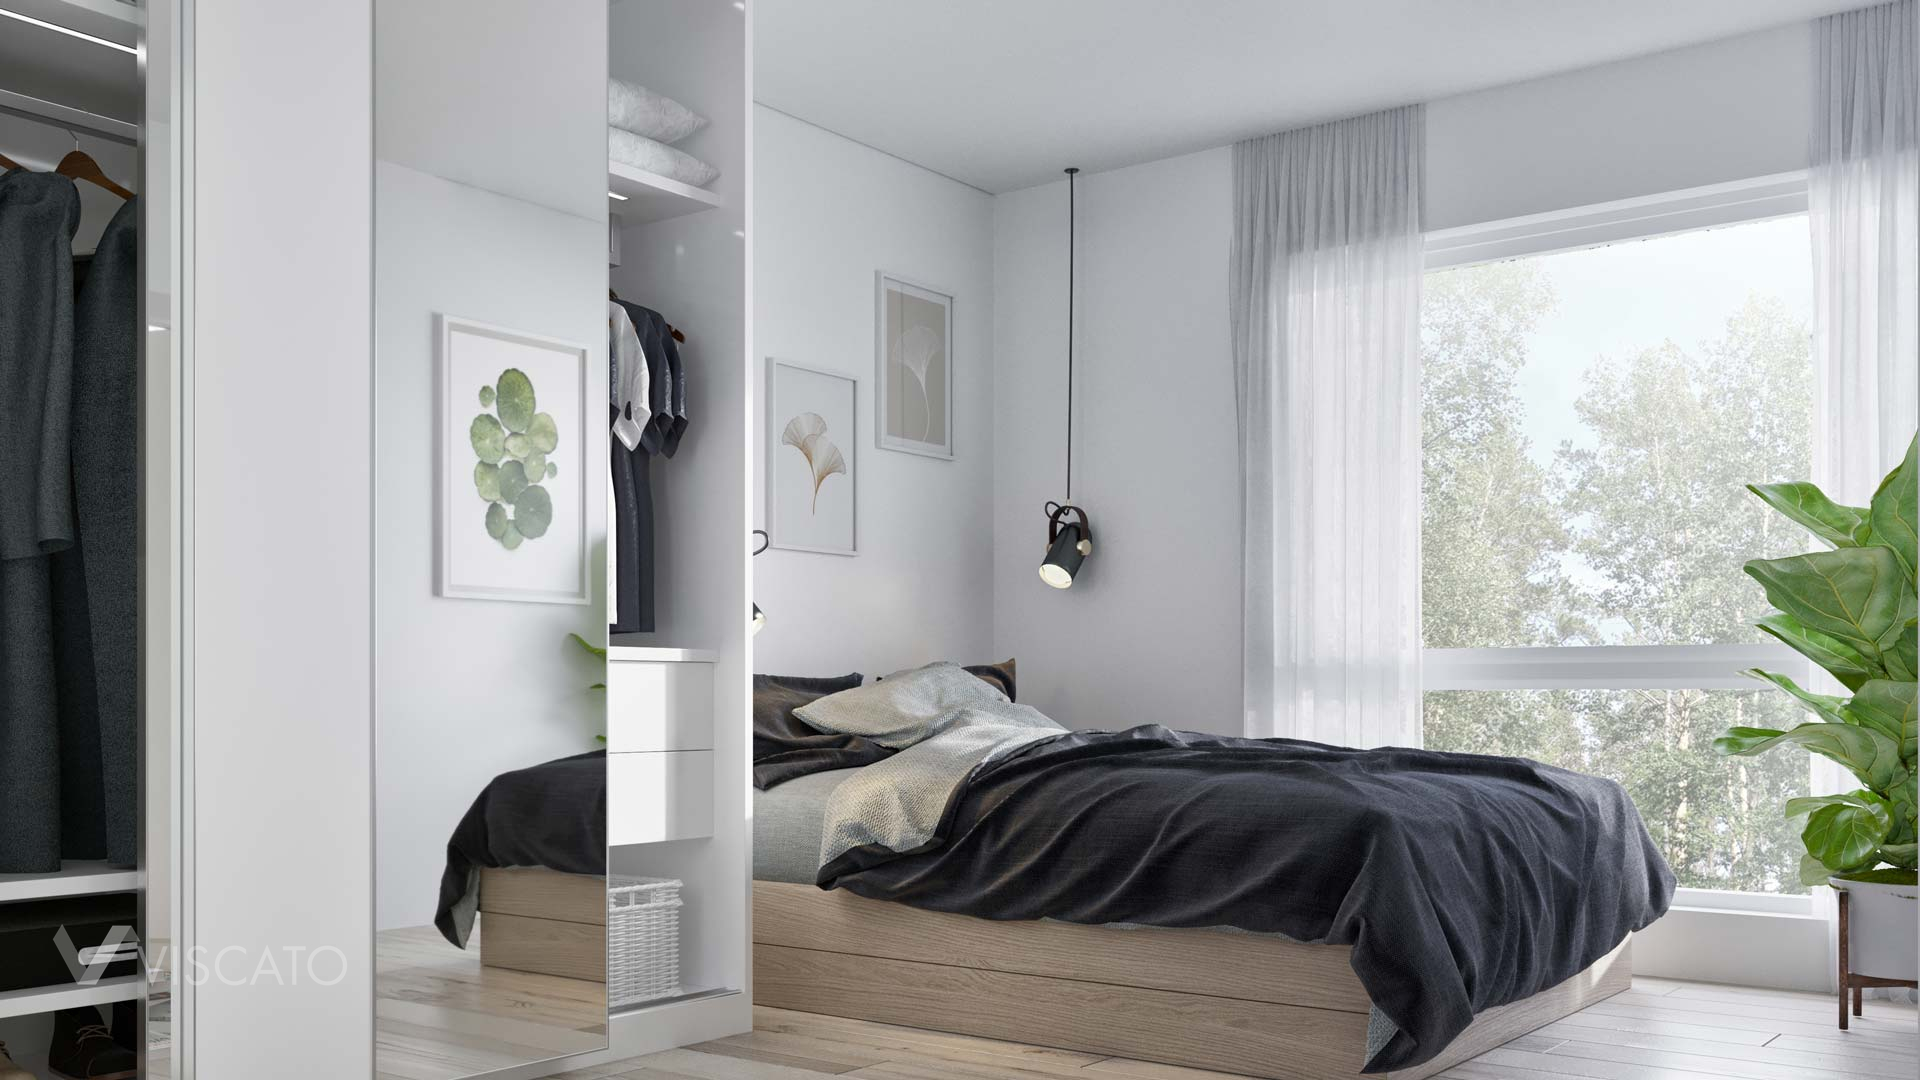 bedroom with large build in wardrobe, Viscato 3D